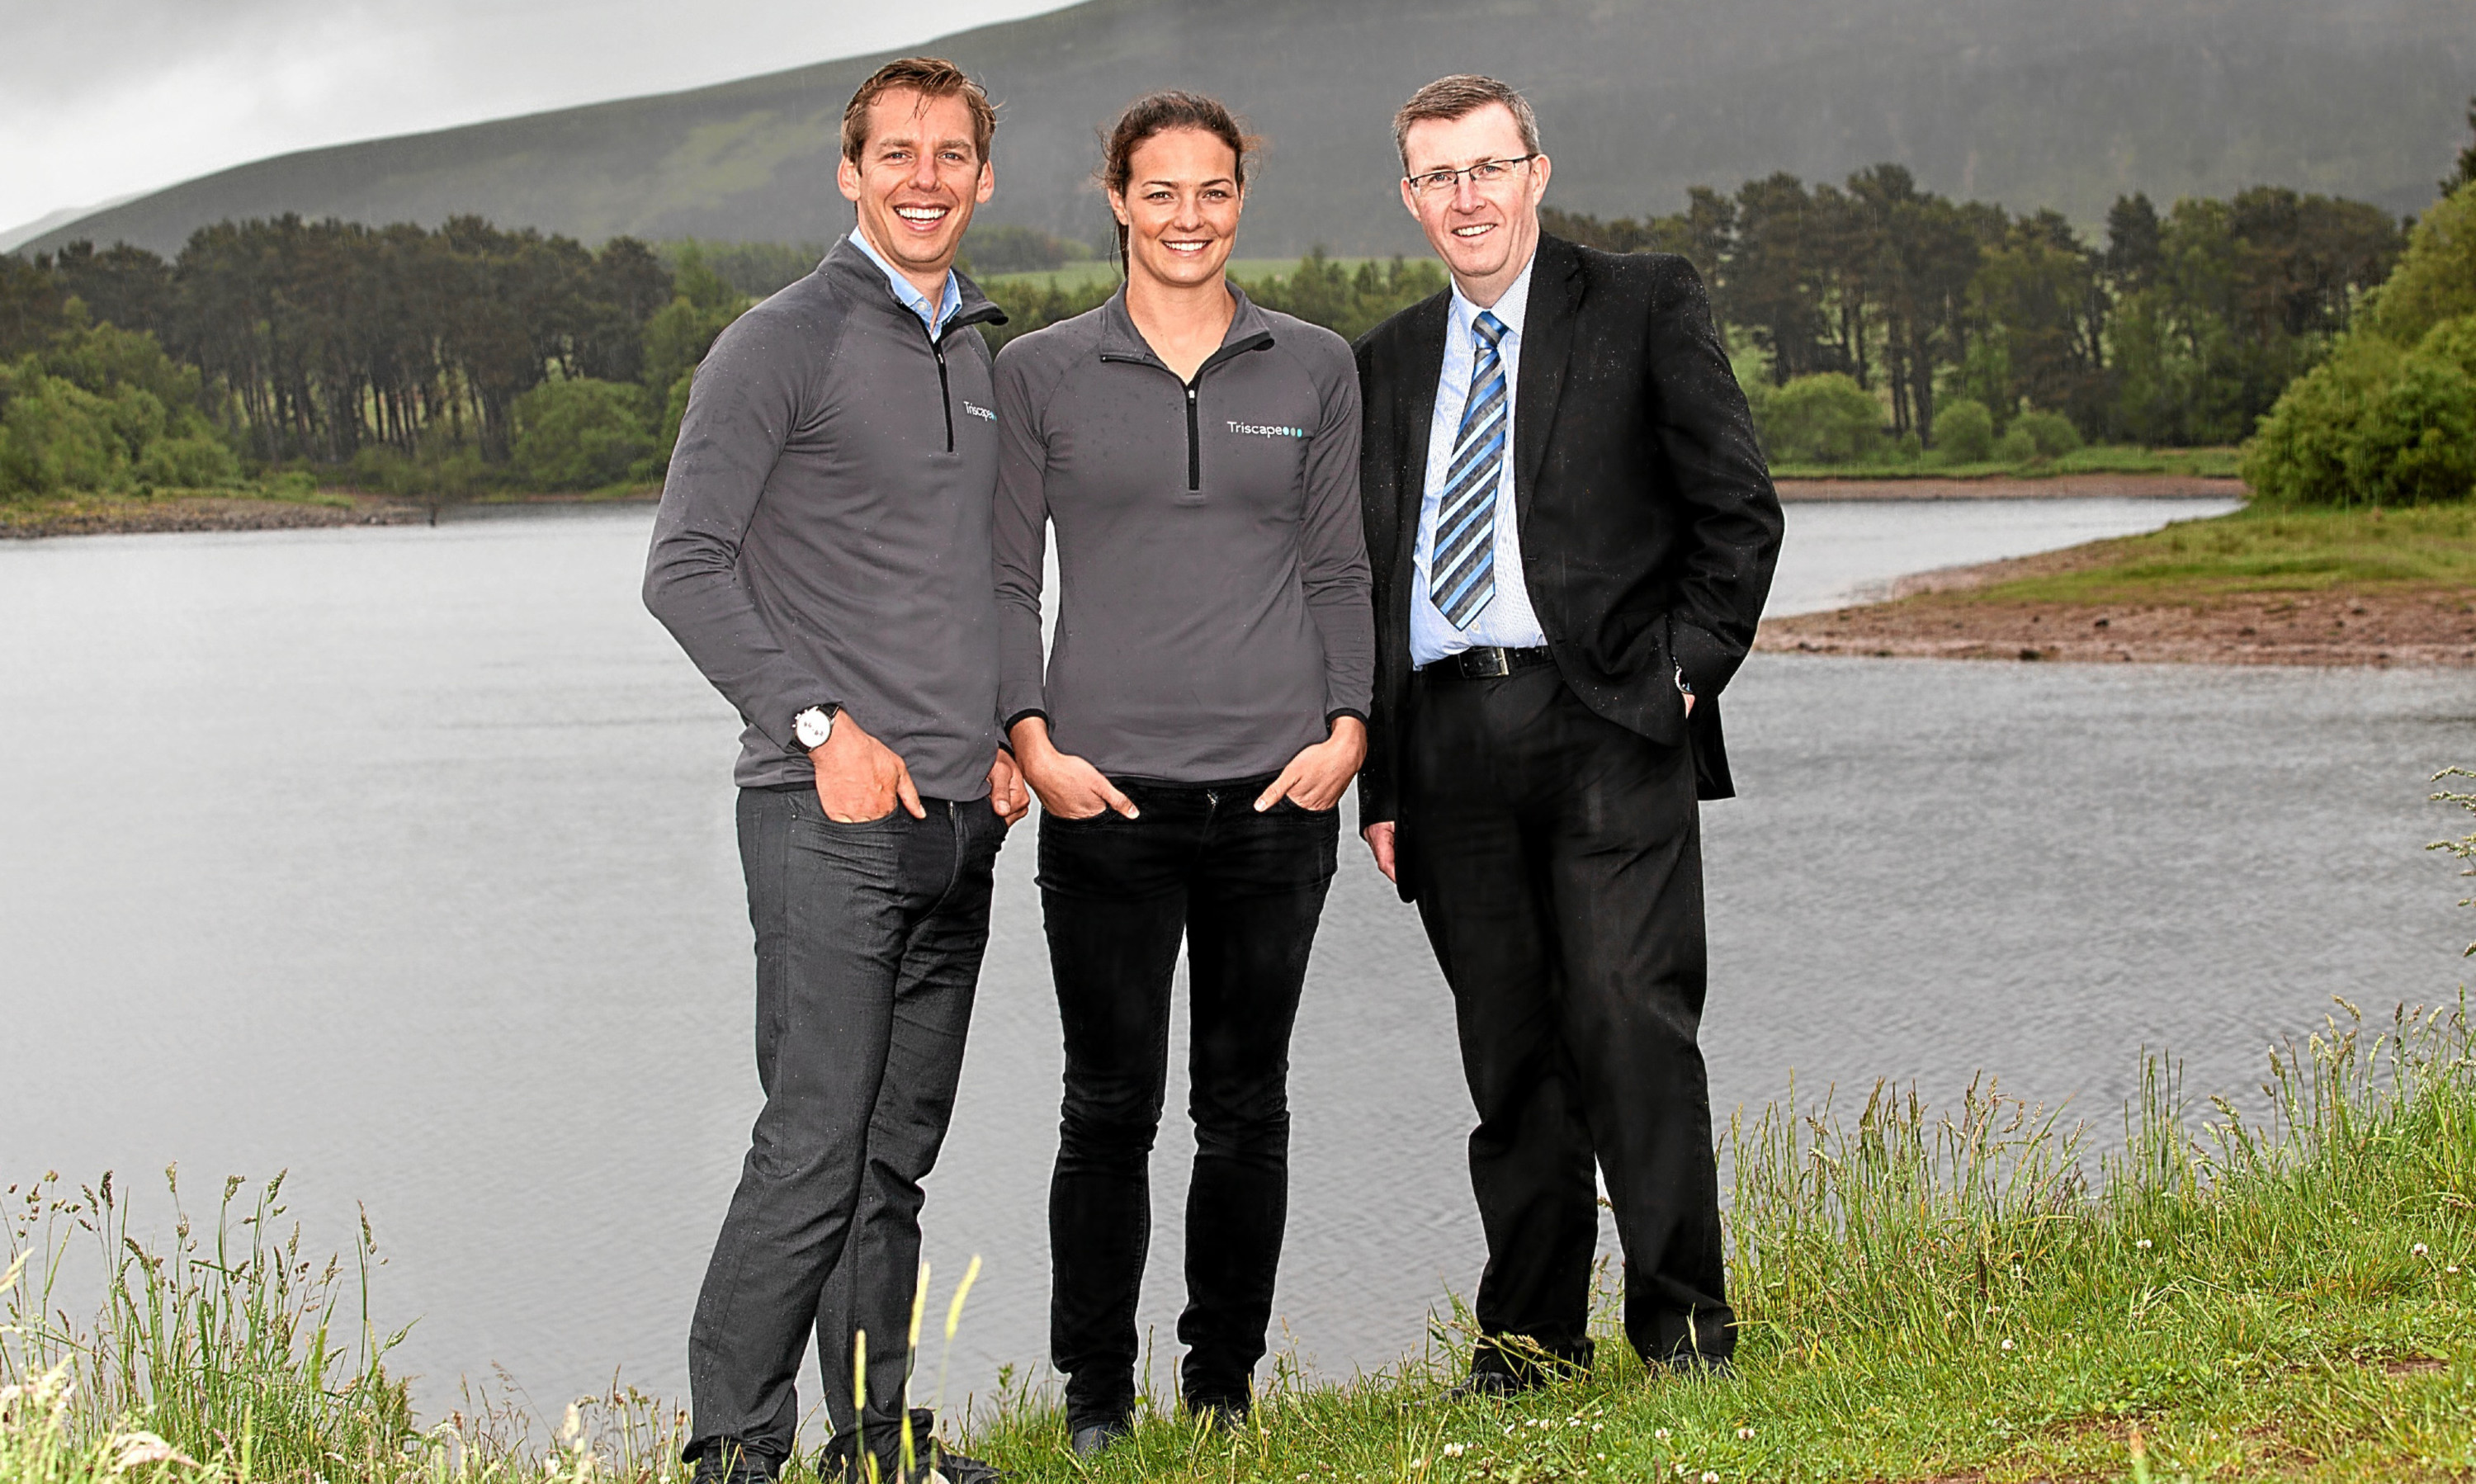 Olympic swimmers Keri-anne Payne and David Carry from Triscape with Kevin Thomson from the Clydesdale Bank